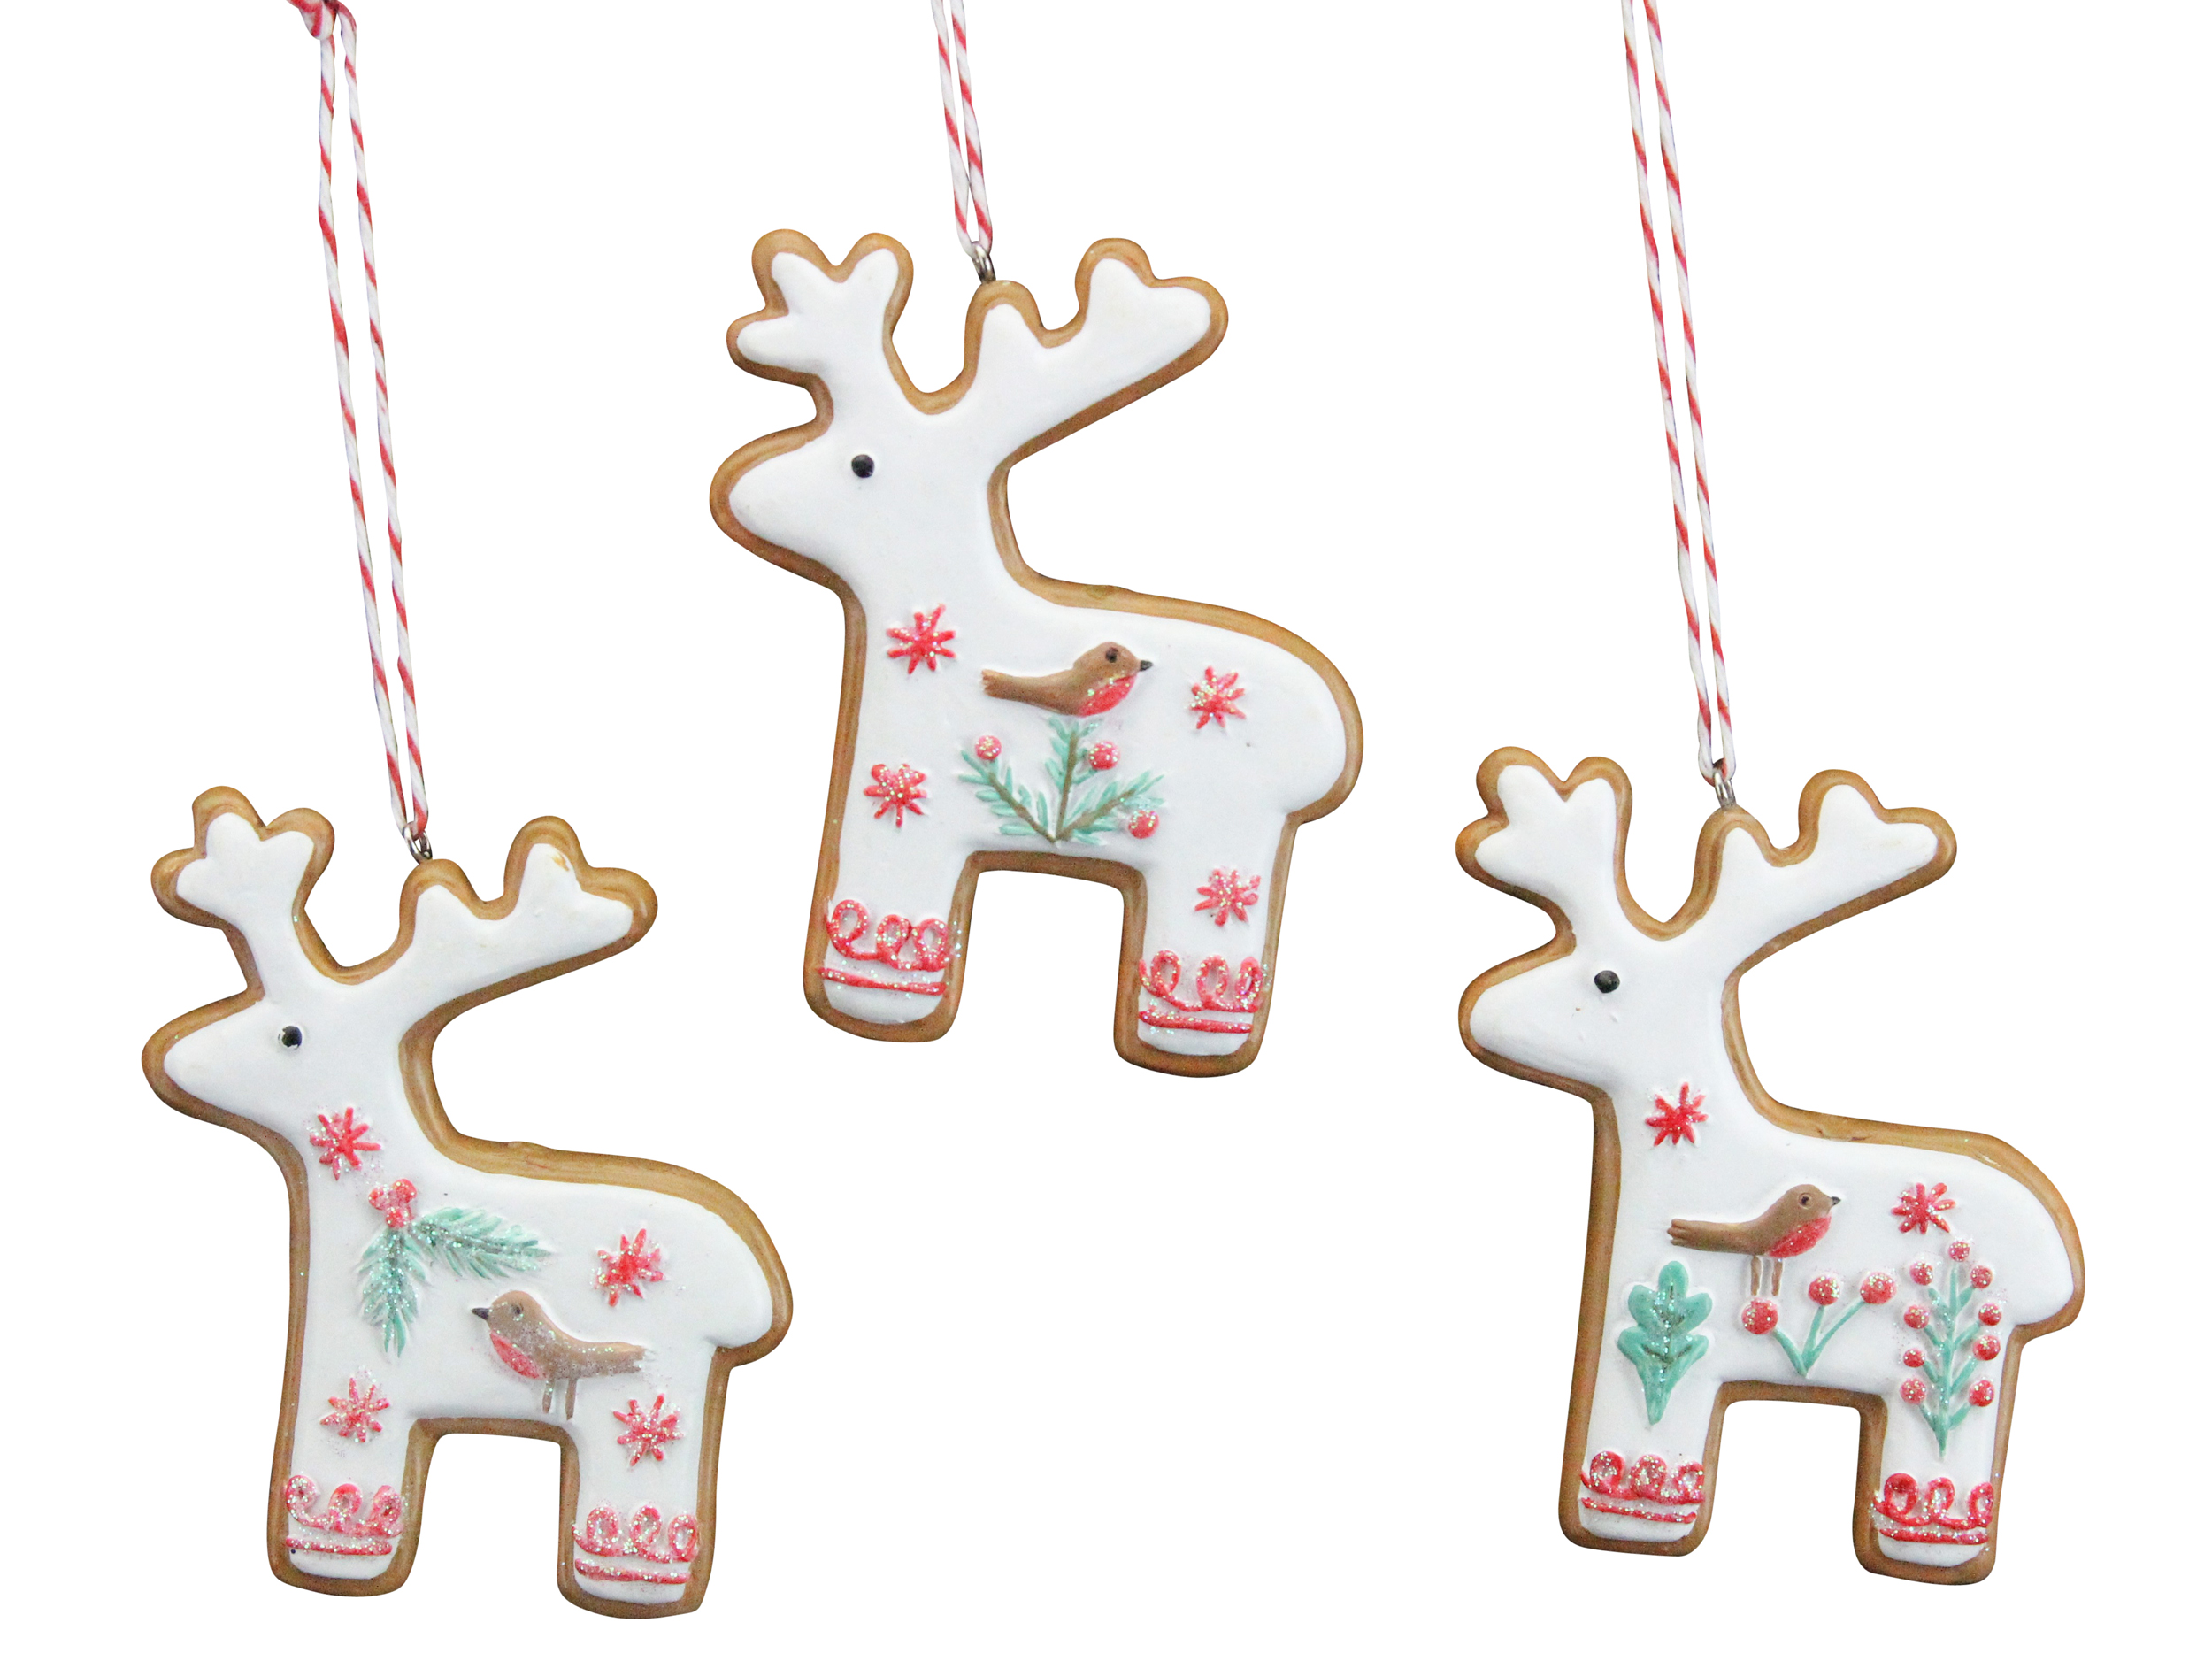 Details About 3 X Gisela Graham Iced Gingerbread Reindeer Hanging Christmas Tree Decorations